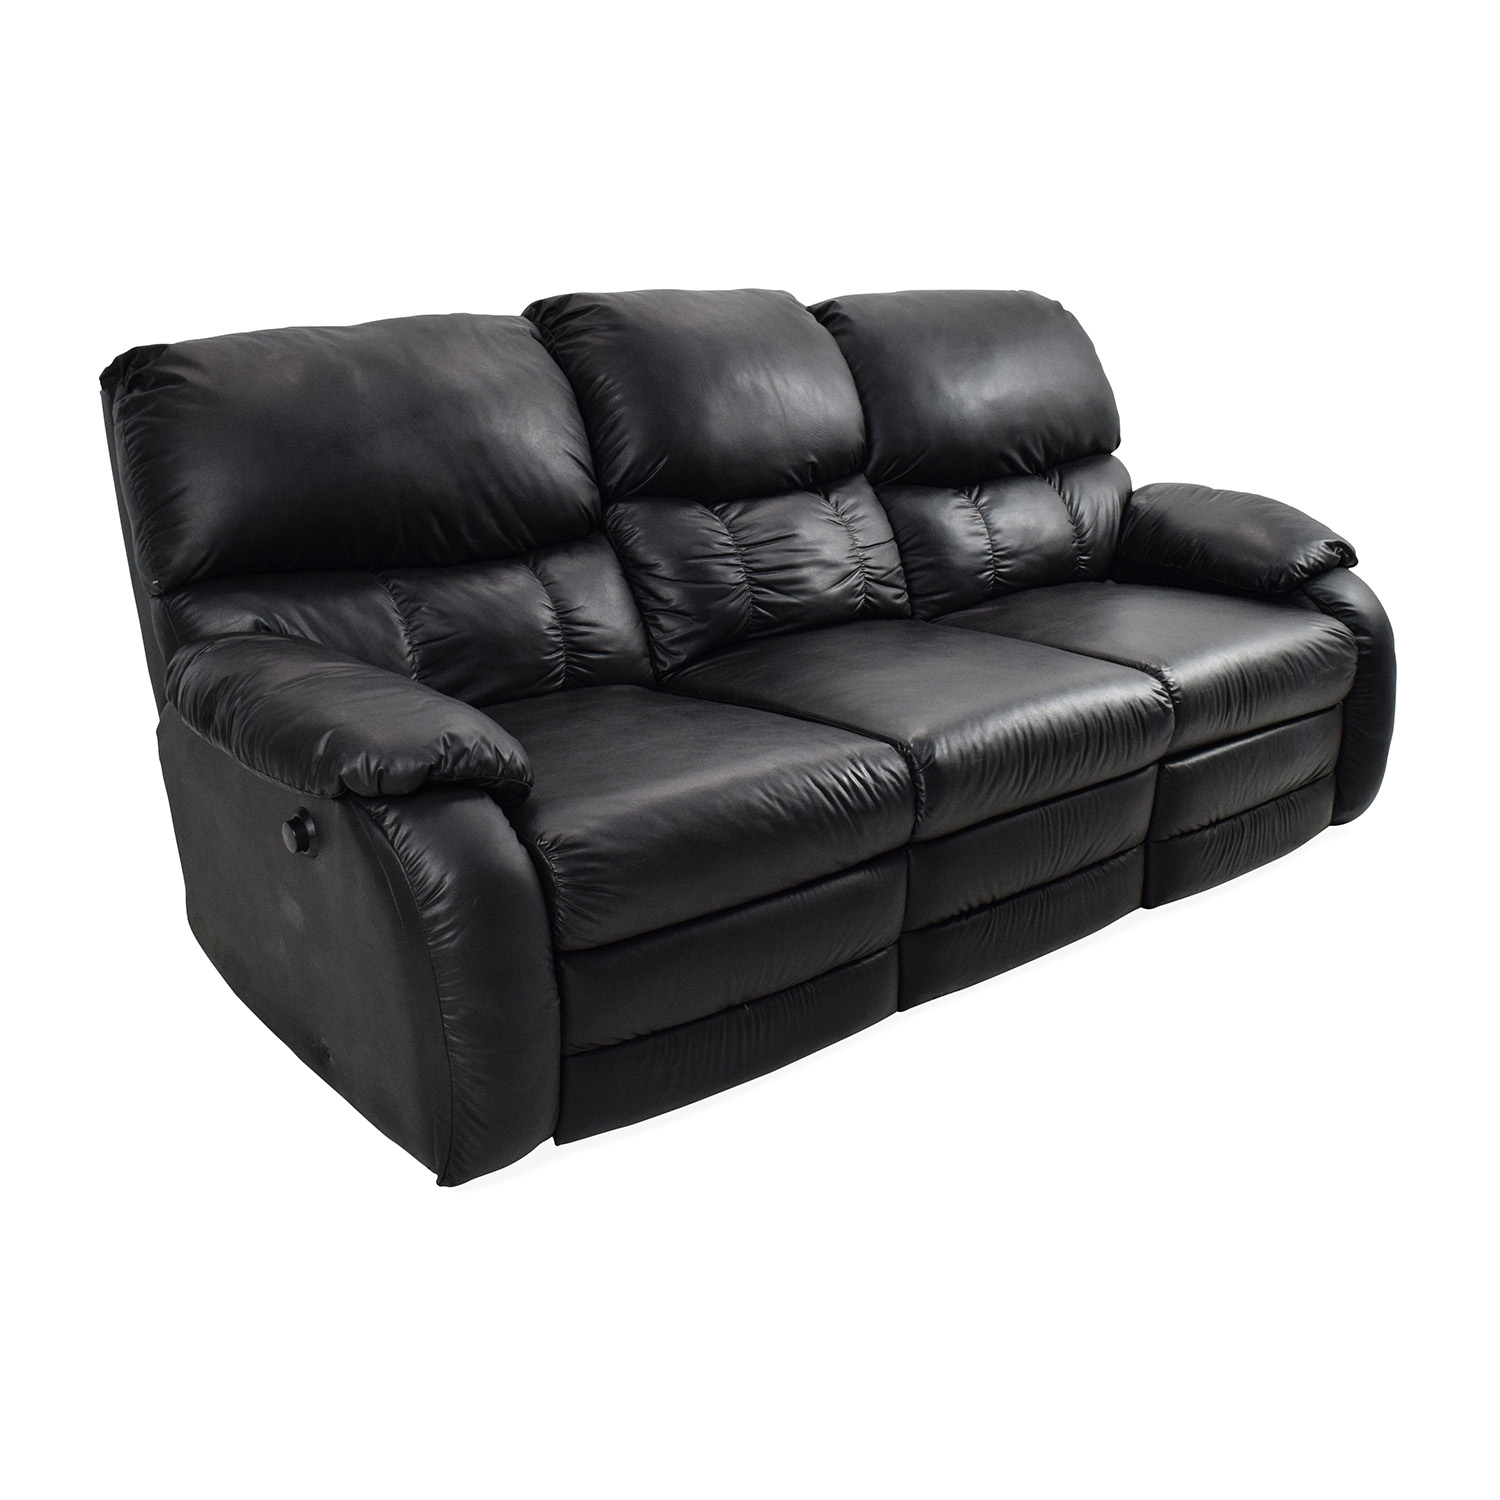 secondhand leather sofas average cost of a good sofa 68% off - black reclining couch /